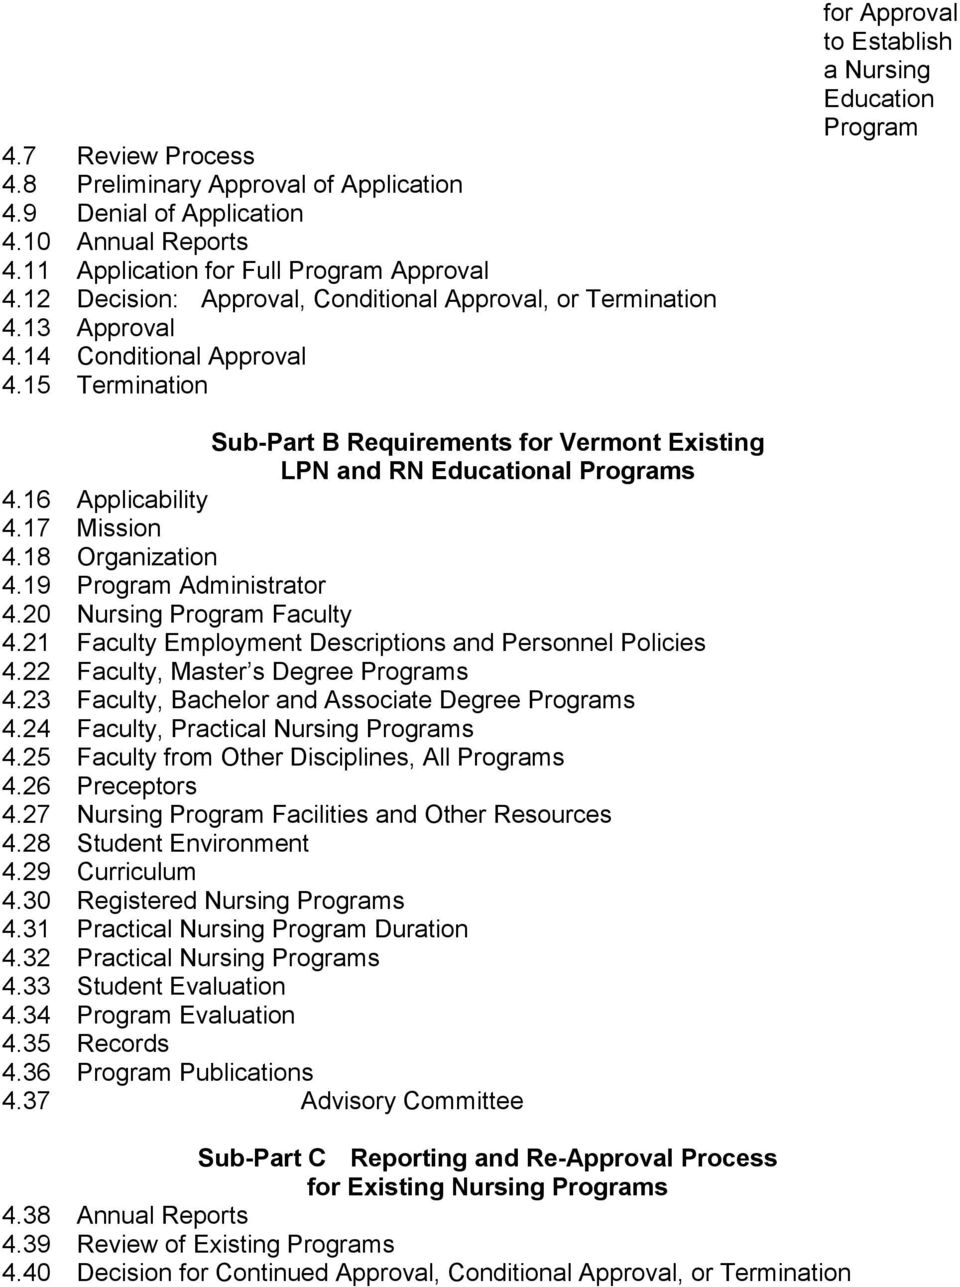 15 Termination for Approval to Establish a Nursing Education Program Sub-Part B Requirements for Vermont Existing LPN and RN Educational Programs 4.16 Applicability 4.17 Mission 4.18 Organization 4.